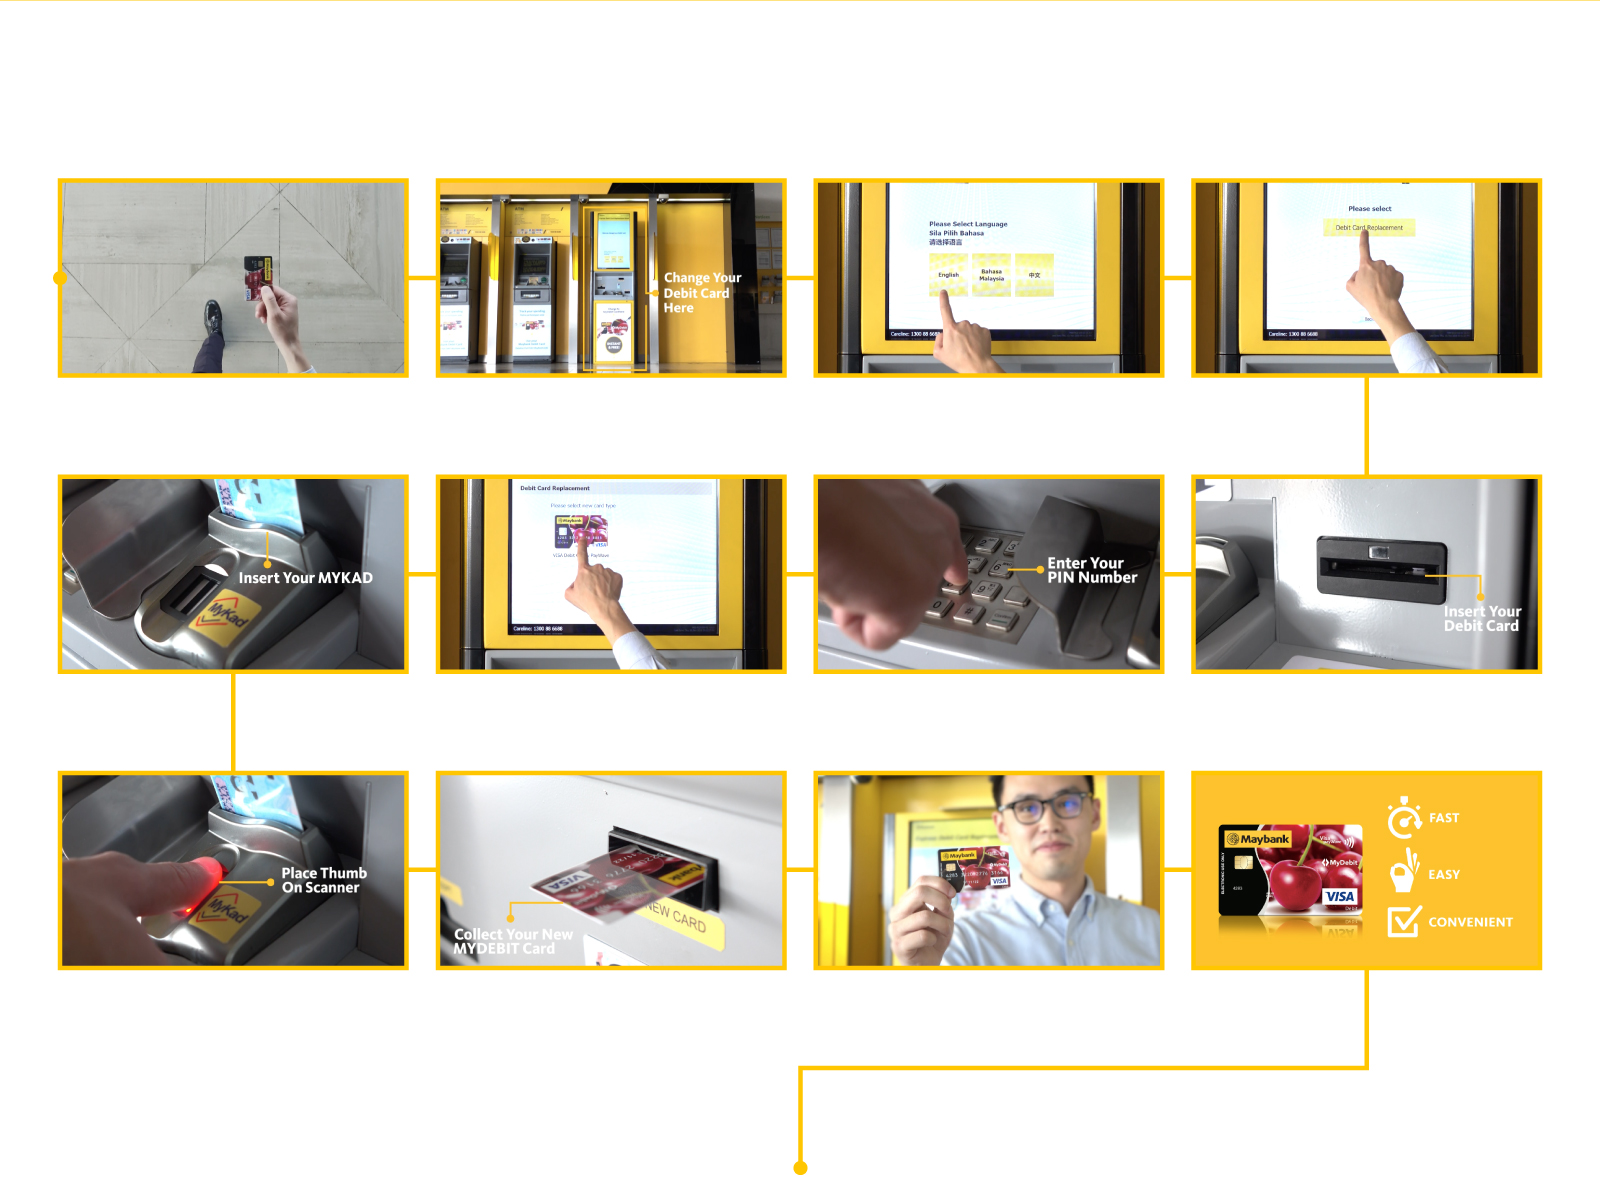 Maybank re-carding video screenshots showing the process of exchanging a debit card with USP sign off screen